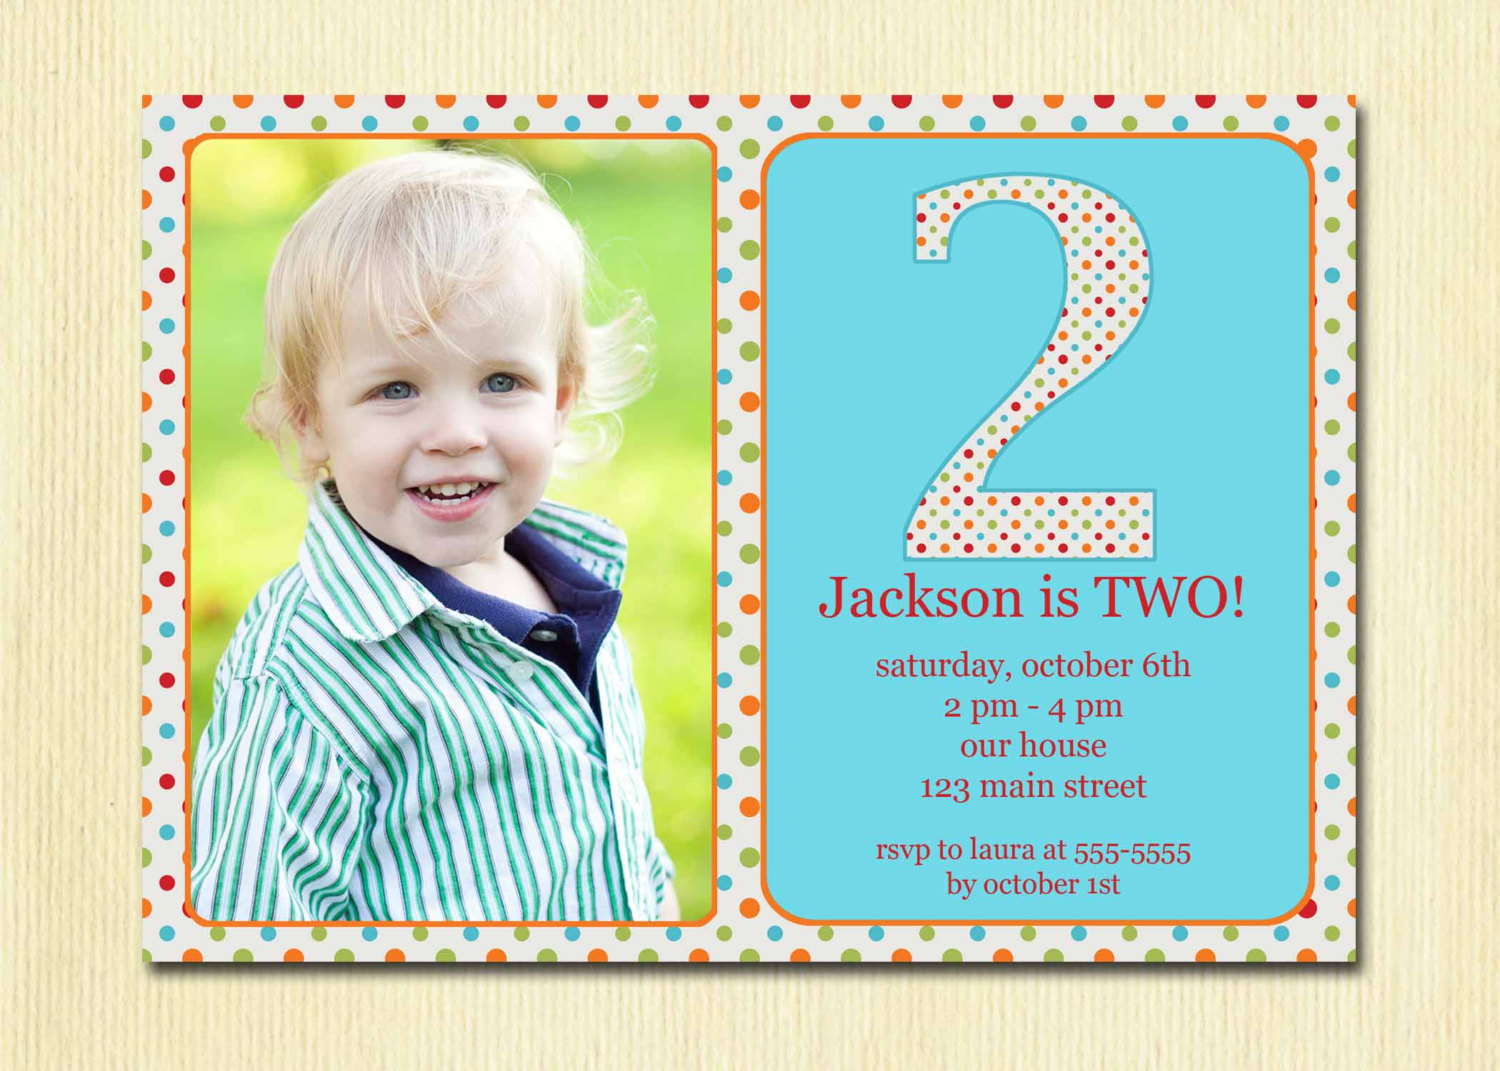 2 year old birthday card printable ; 4-year-old-birthday-party-invitations-1-year-old-birthday-invitations_year-old-birthday-party-invitations-ins-ssrenterprises-on-beautiful-one-year-old-birthday-invitations